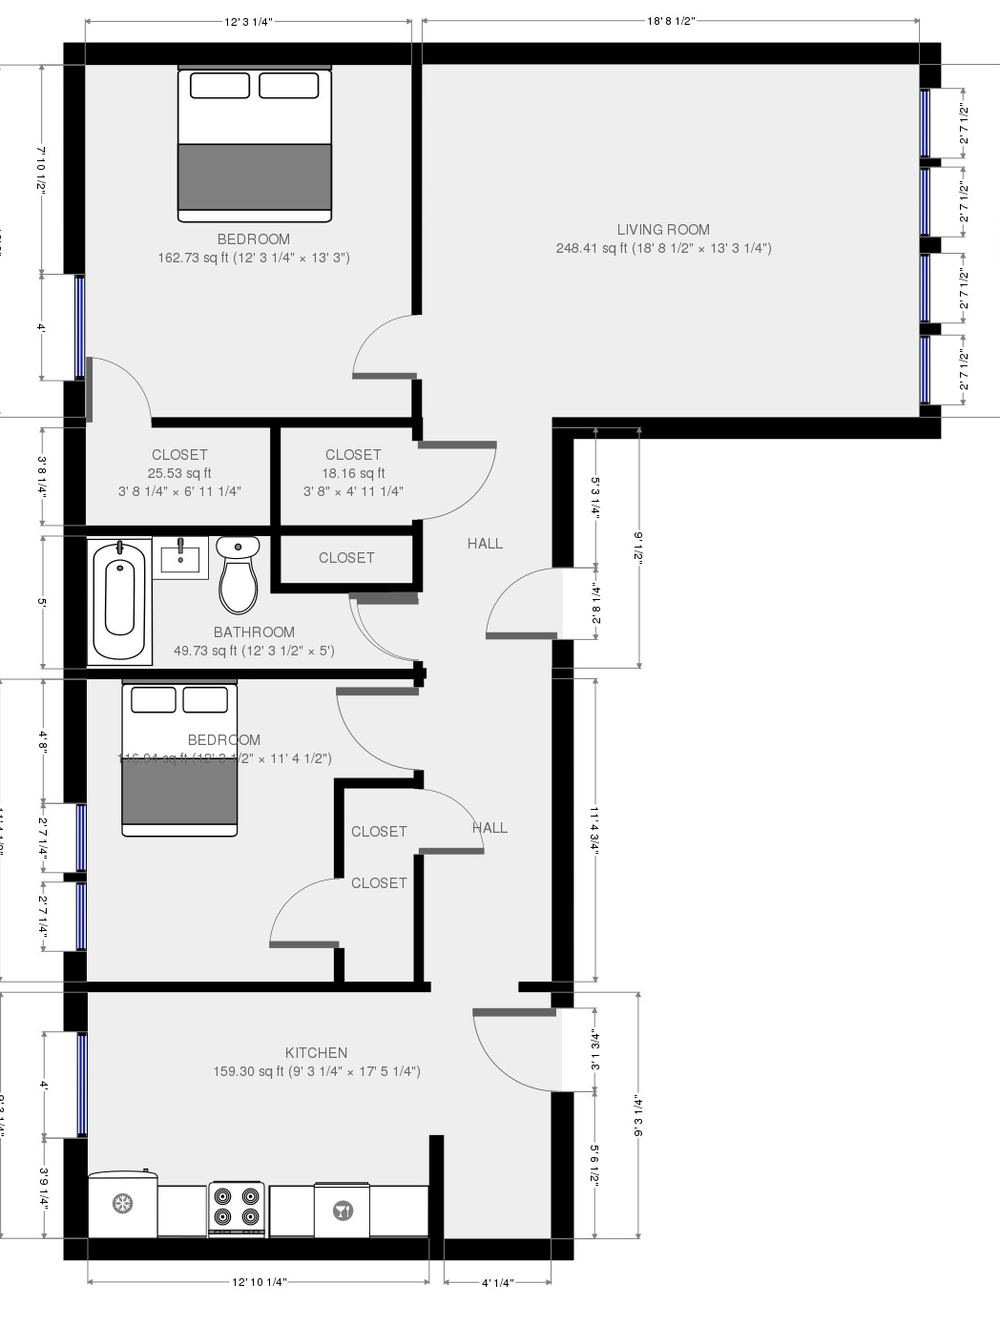 Typical Floor plan for 1647 East Units